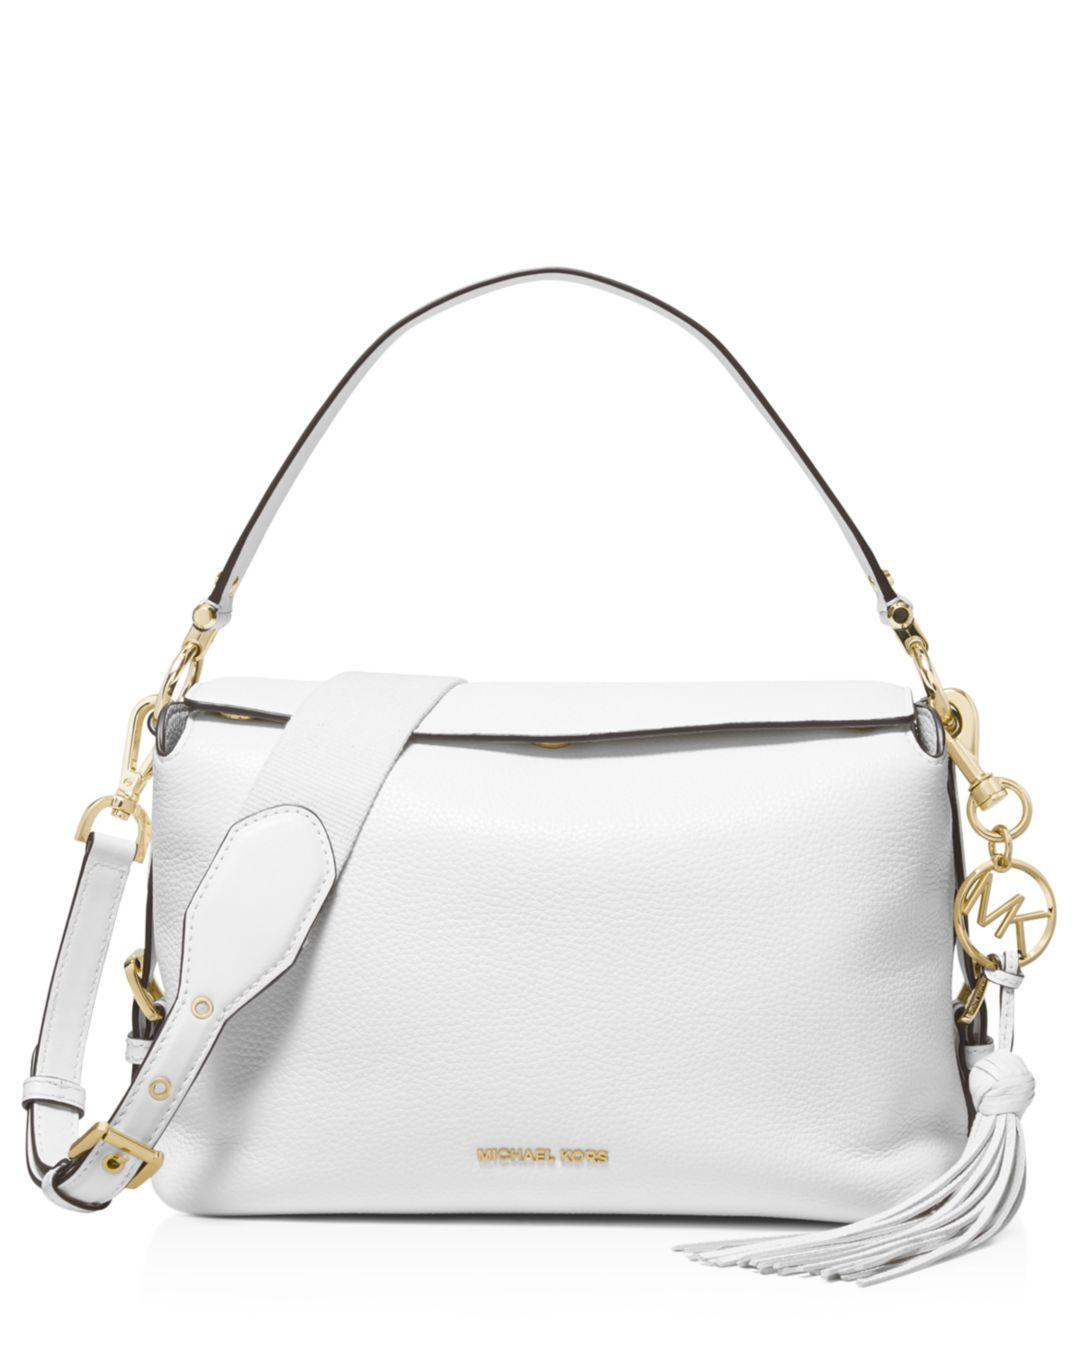 24e638176b78 MICHAEL Michael Kors Brooke Medium Leather Satchel in White - Lyst